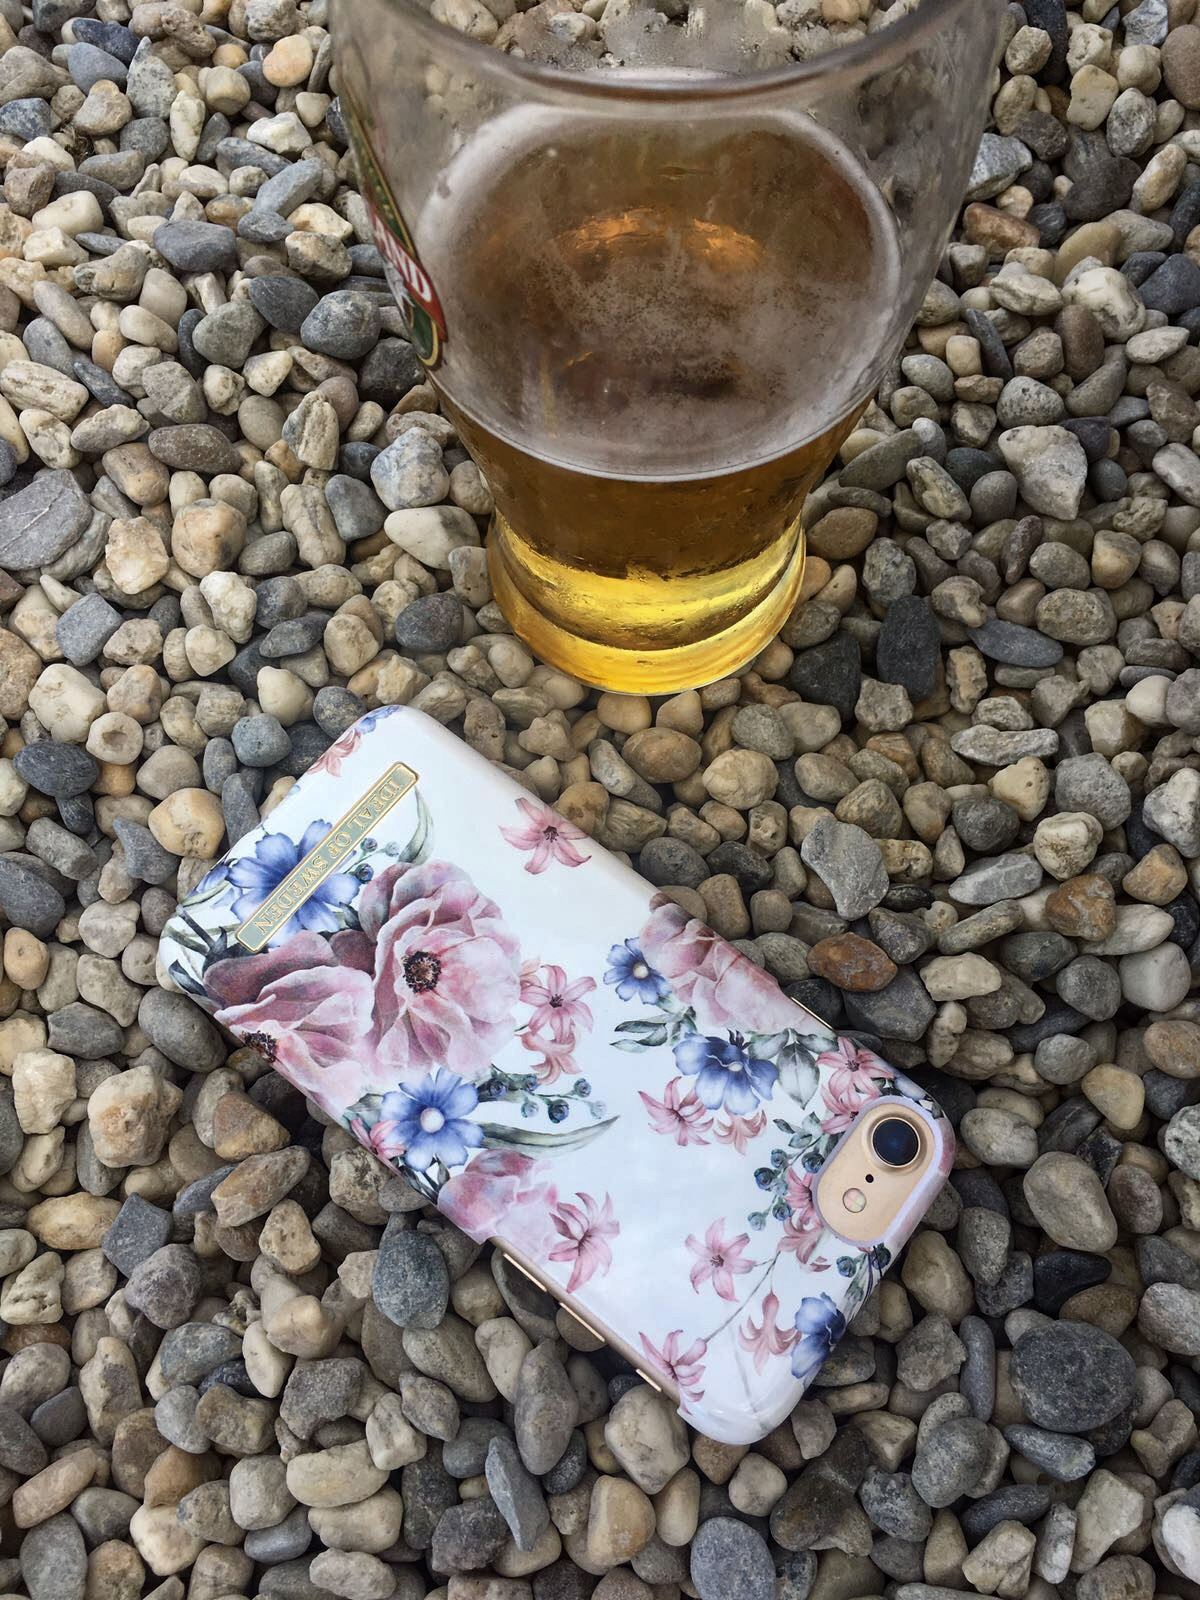 the fashionable phone cases you need to have this summer, ideal of Sweden , Valentina rago, fashion need blog, fashionable phone cases, iPhone 7 cover, cover iPhone, cases phone summer, fashionable phone cases for this summer